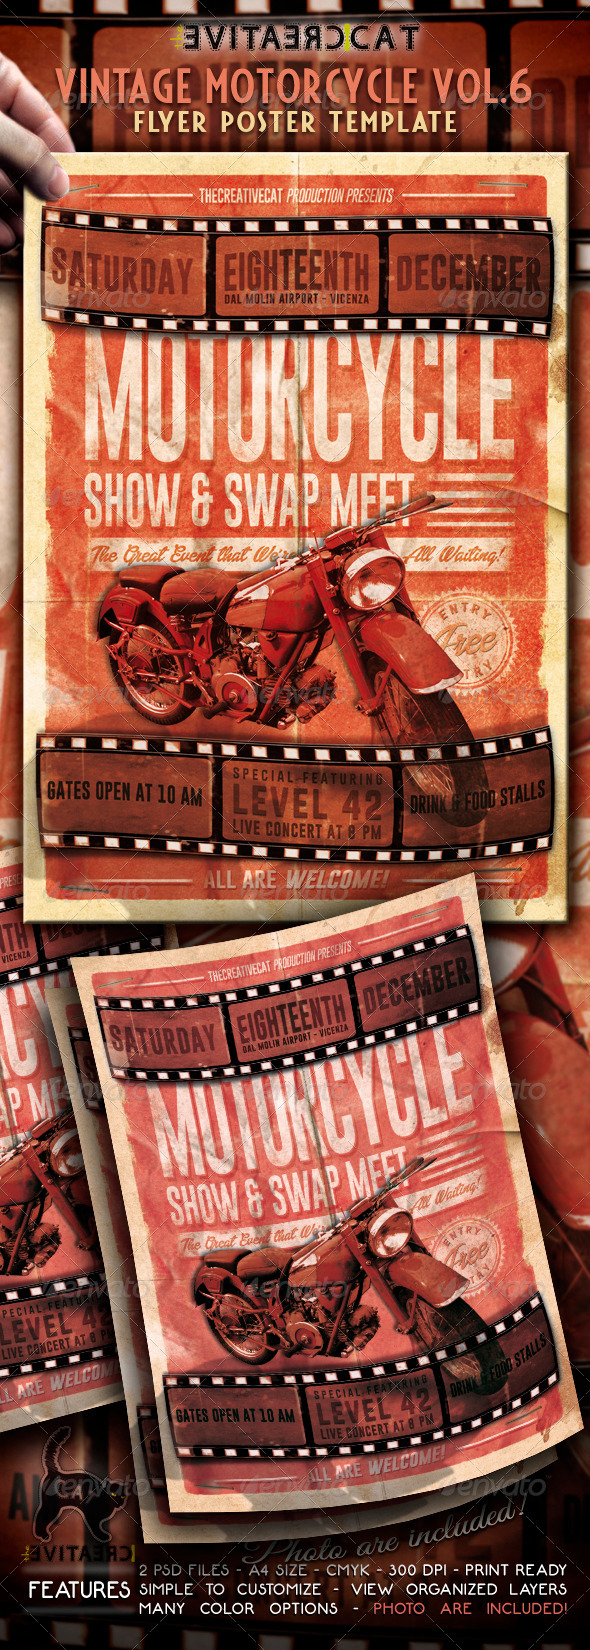 GraphicRiver Vintage Motorcycle Flyer Poster Vol 6 5837407